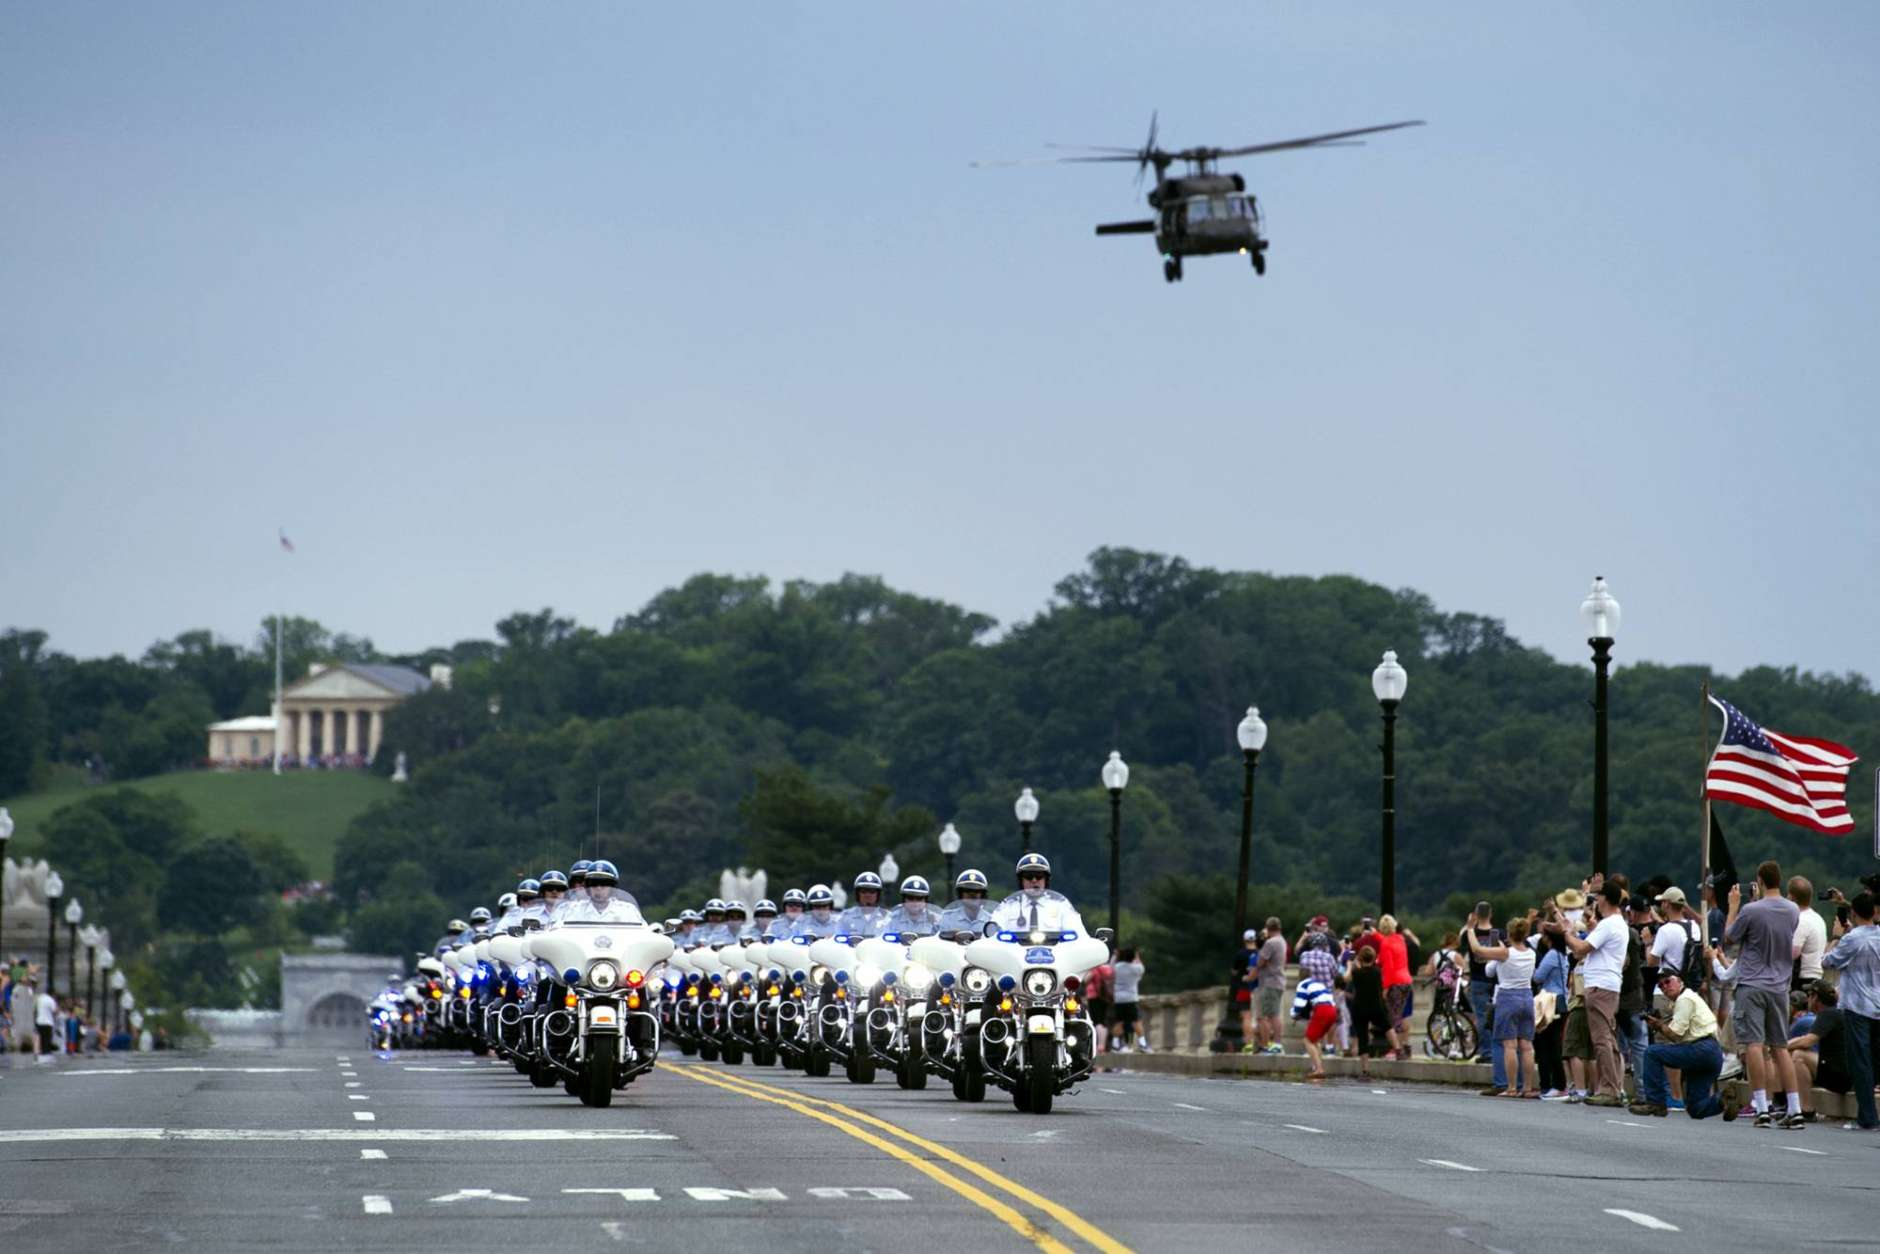 A military helicopter flies over a police escort on the Memorial Bridge, for motorcyclists riding in the 30th anniversary of the Rolling Thunder 'Ride for Freedom' demonstration in Washington, Sunday, May 28, 2017. Rolling Thunder seeks to bring full accountability for all U.S. prisoners of war and missing in action (POW/MIA) soldiers. (AP Photo/Cliff Owen)